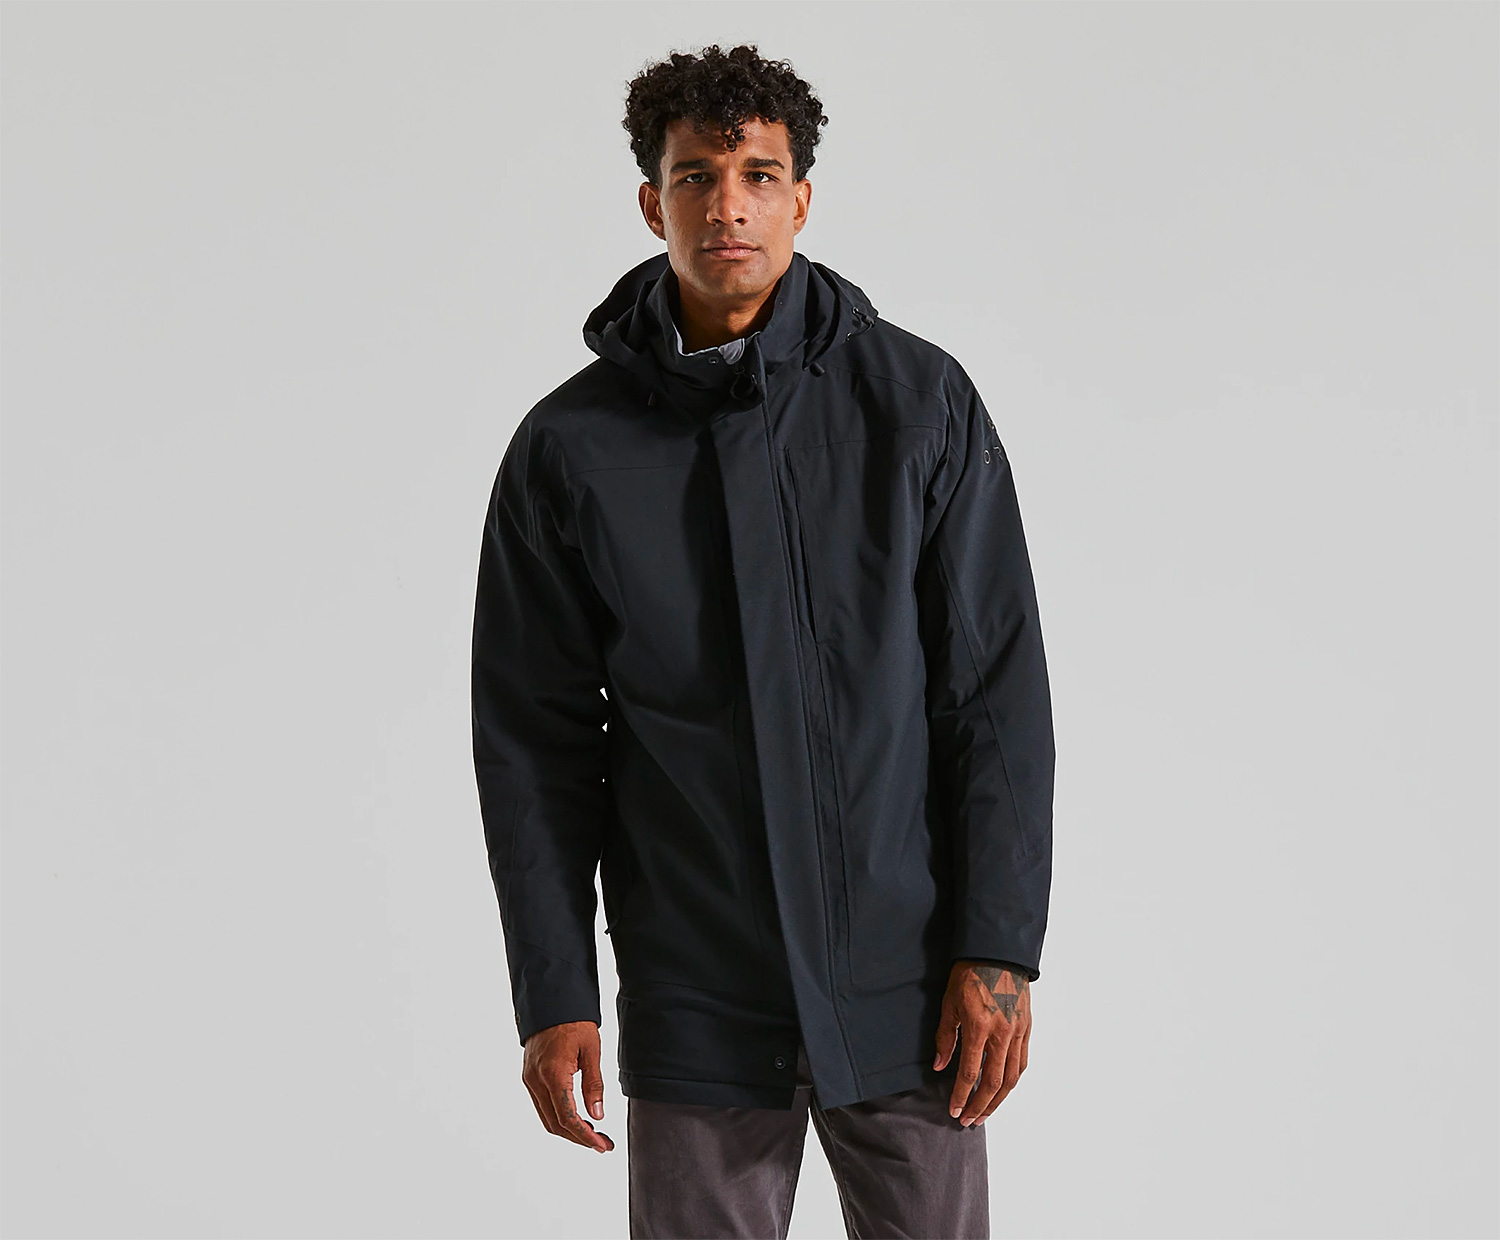 This Jacket Uses NASA Tech to Keep You Toasty Warm at werd.com